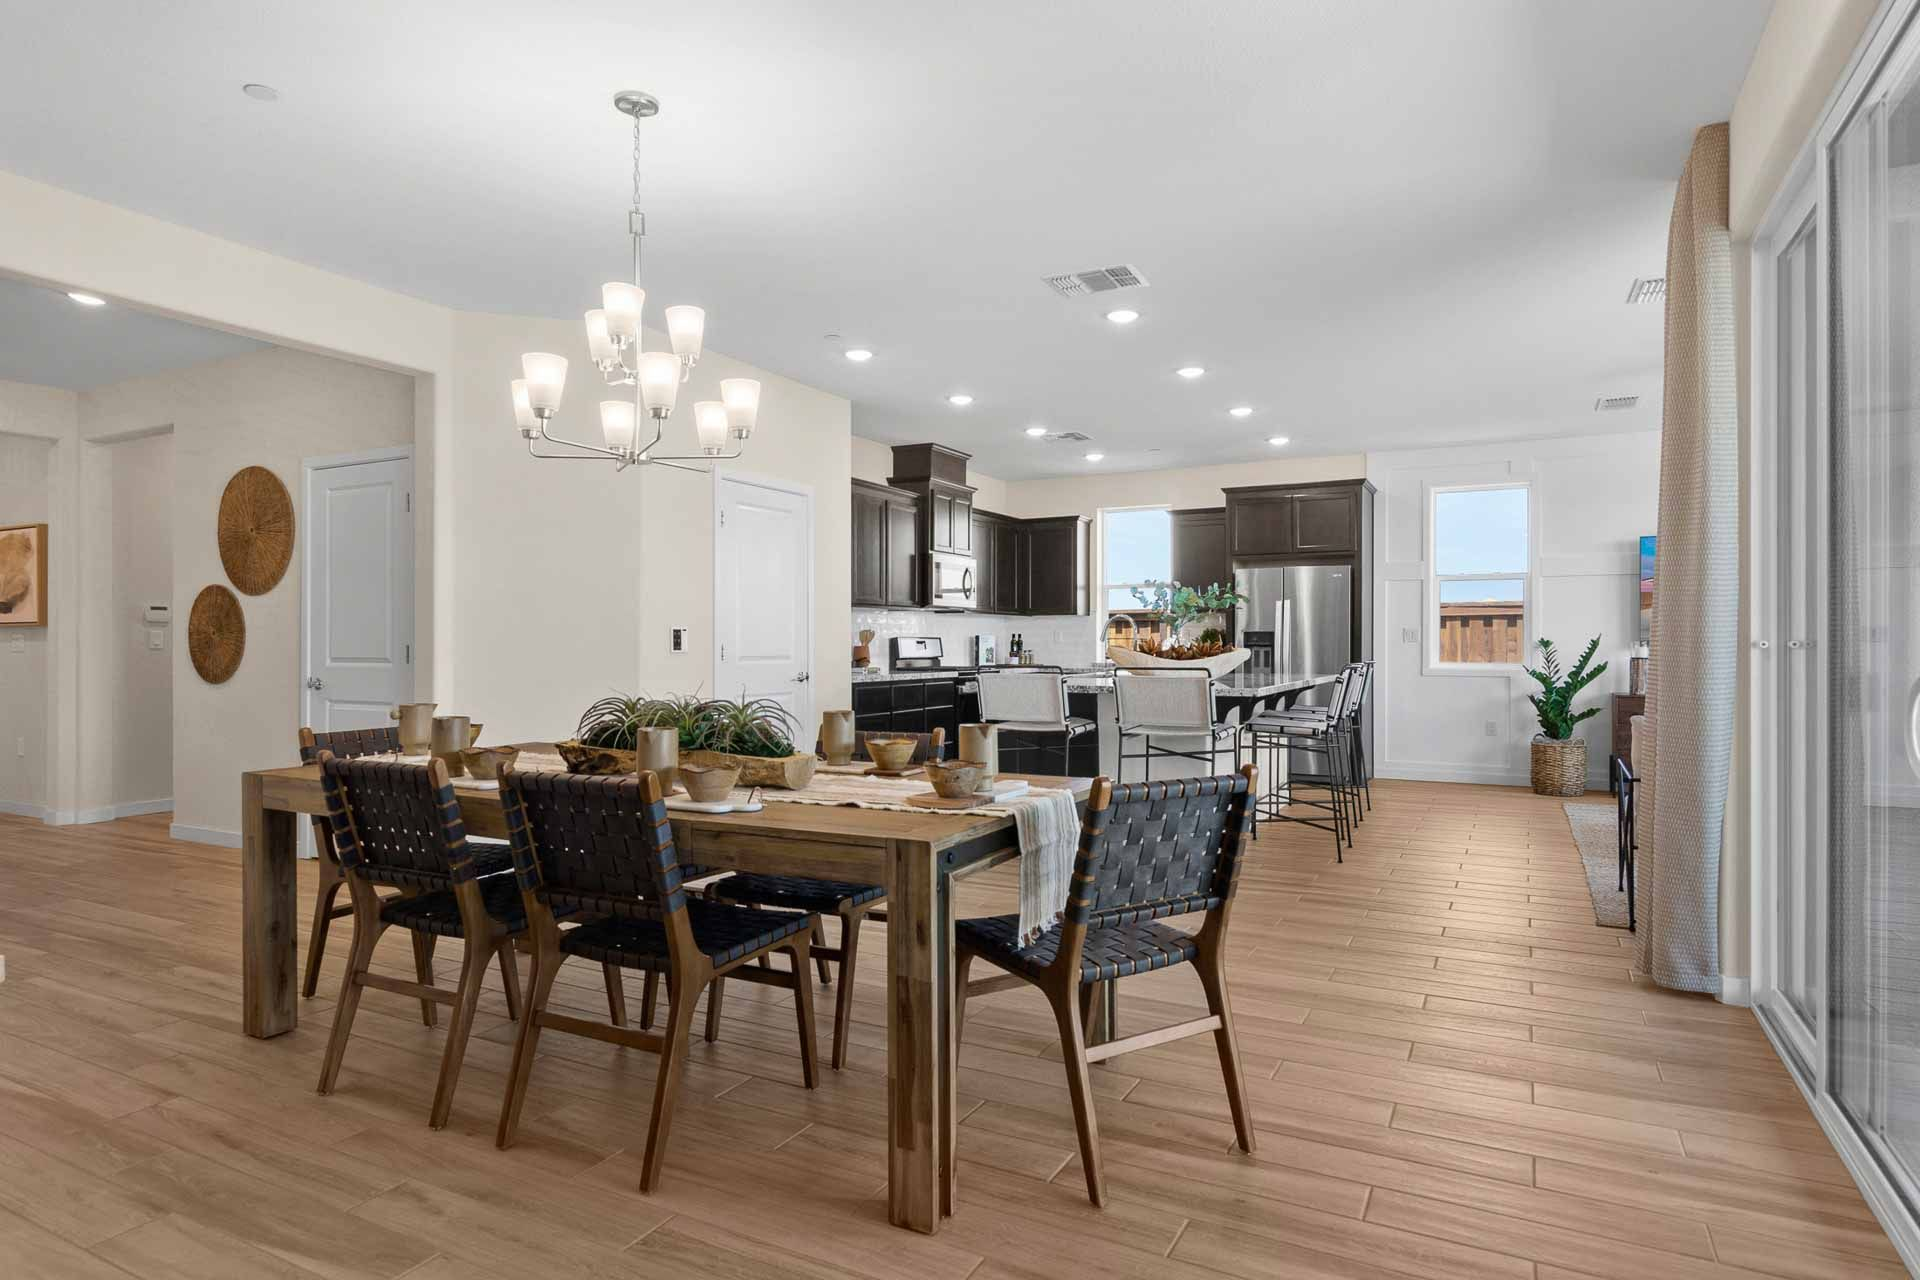 Kitchen featured in the Residence 3 By Carson Homes in Vallejo-Napa, CA